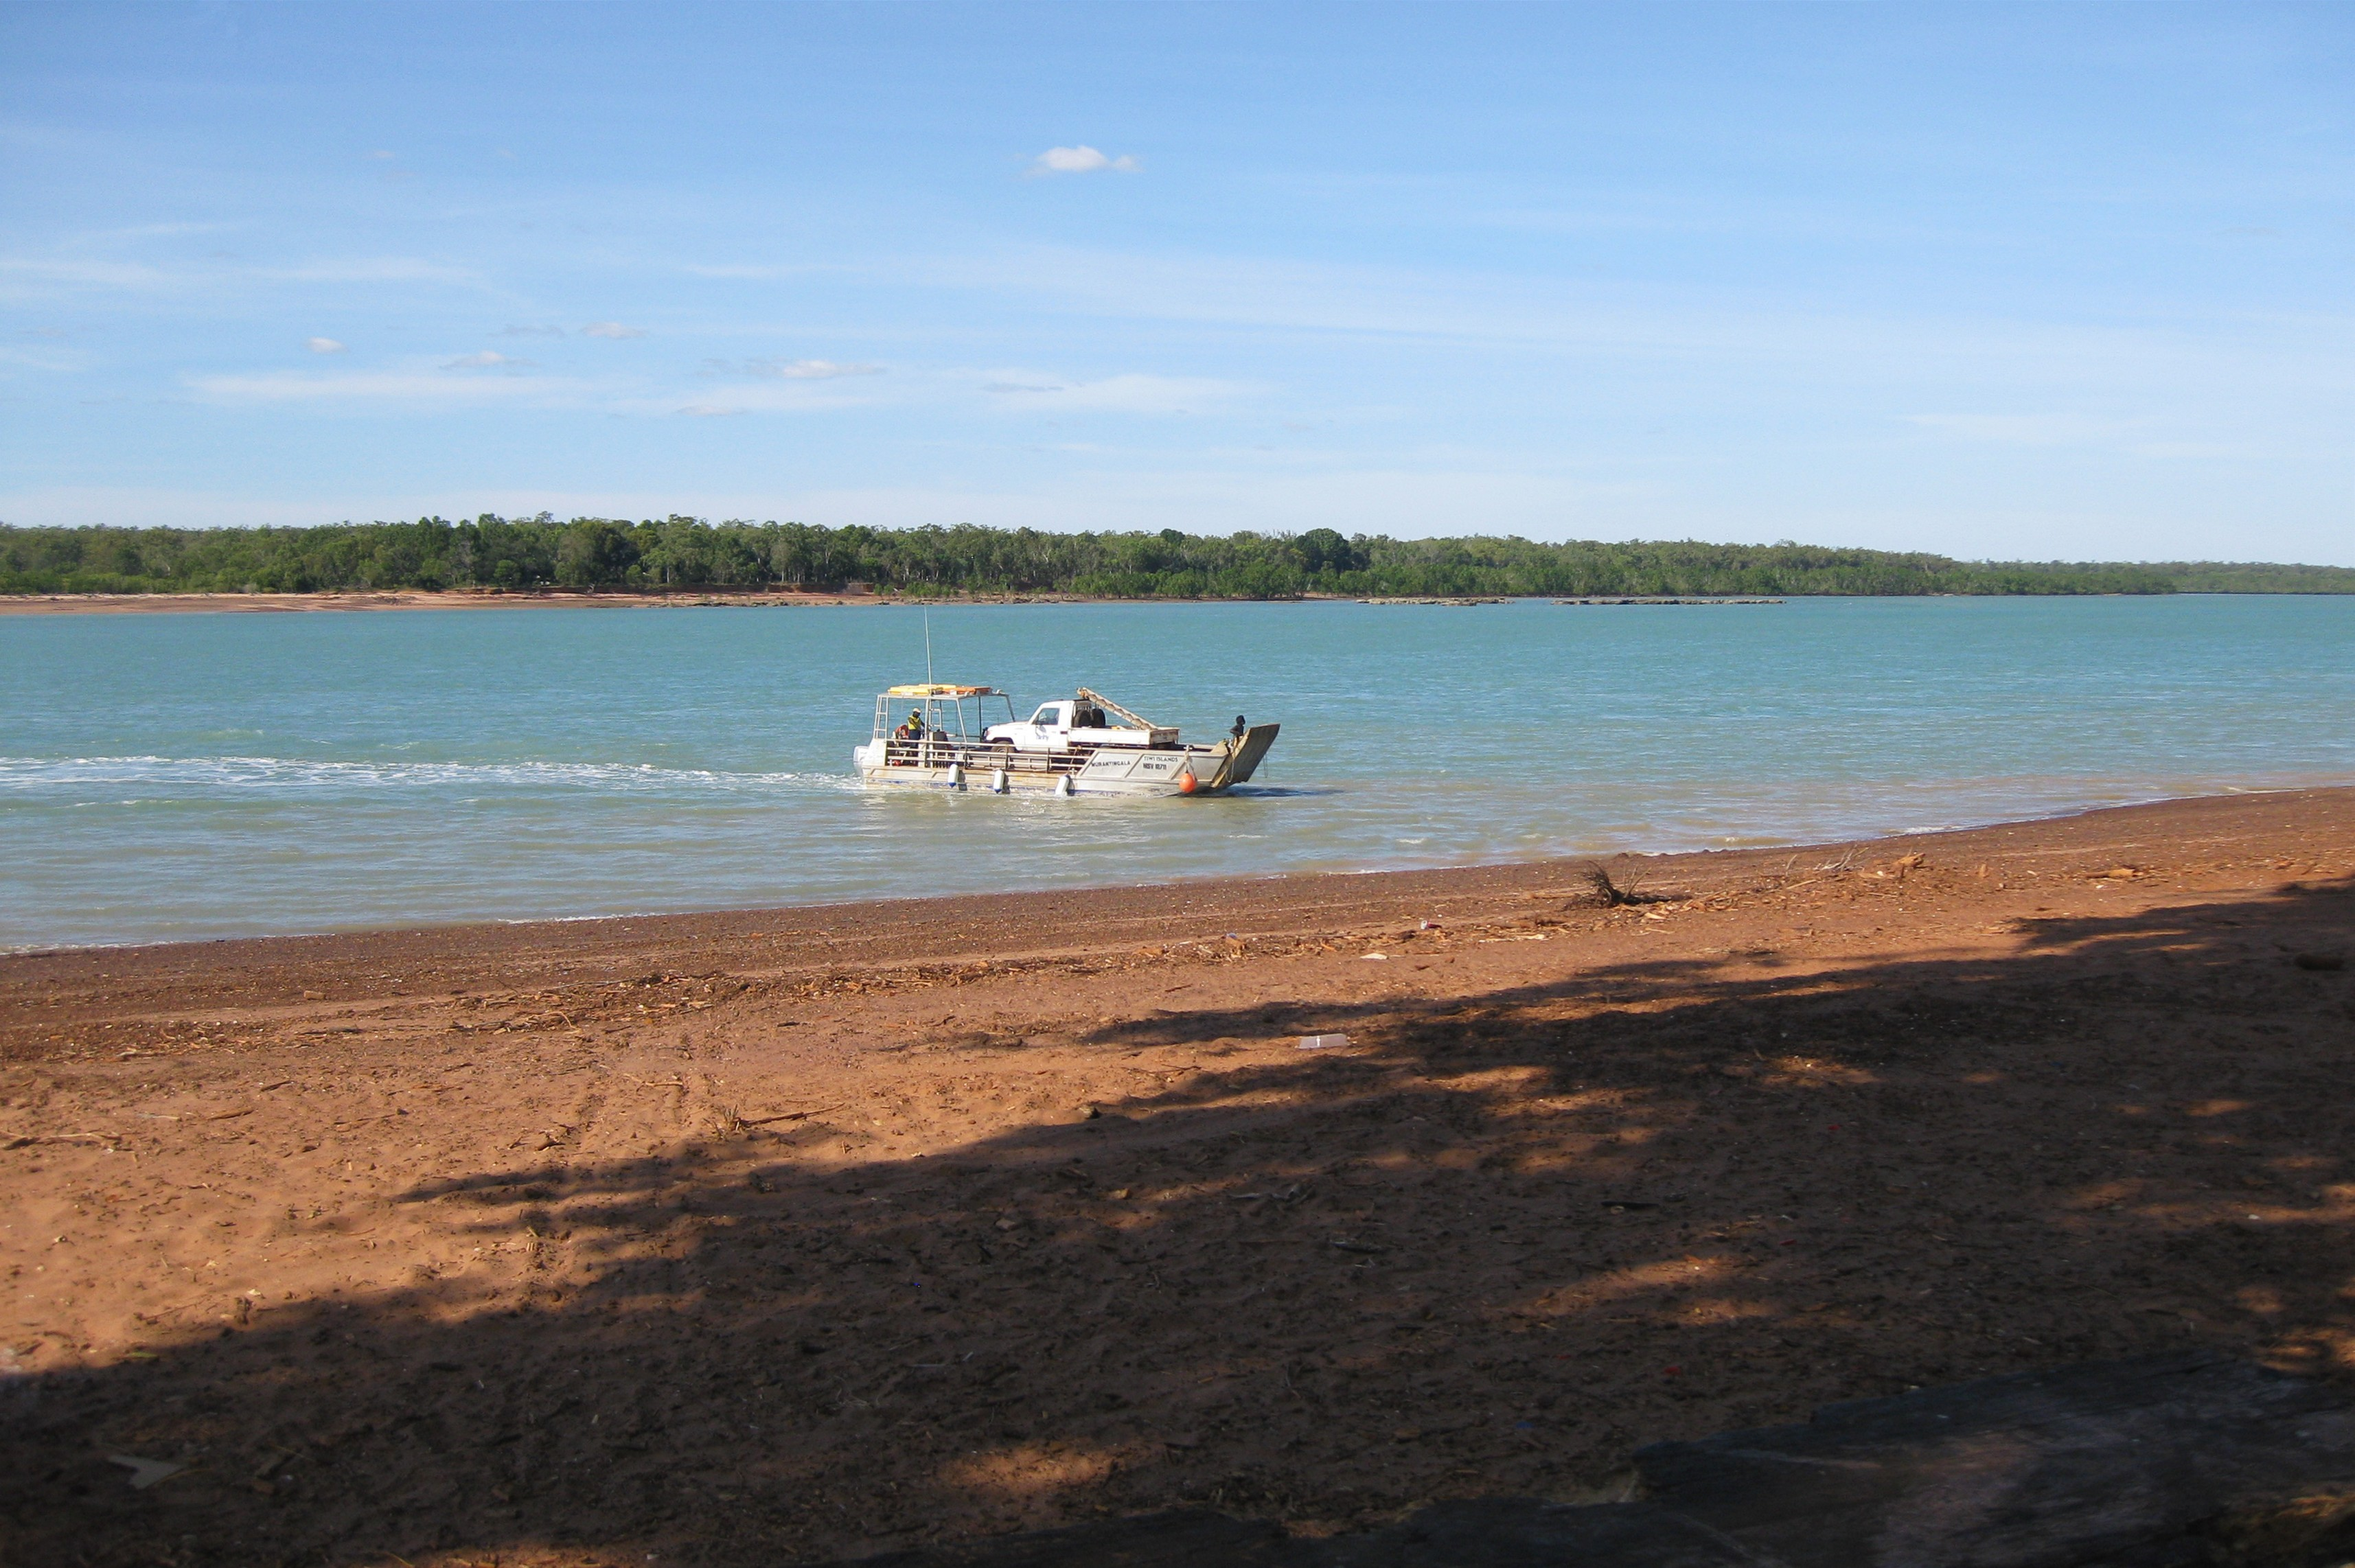 Tiwi Islands, One of the attractions in Darwin